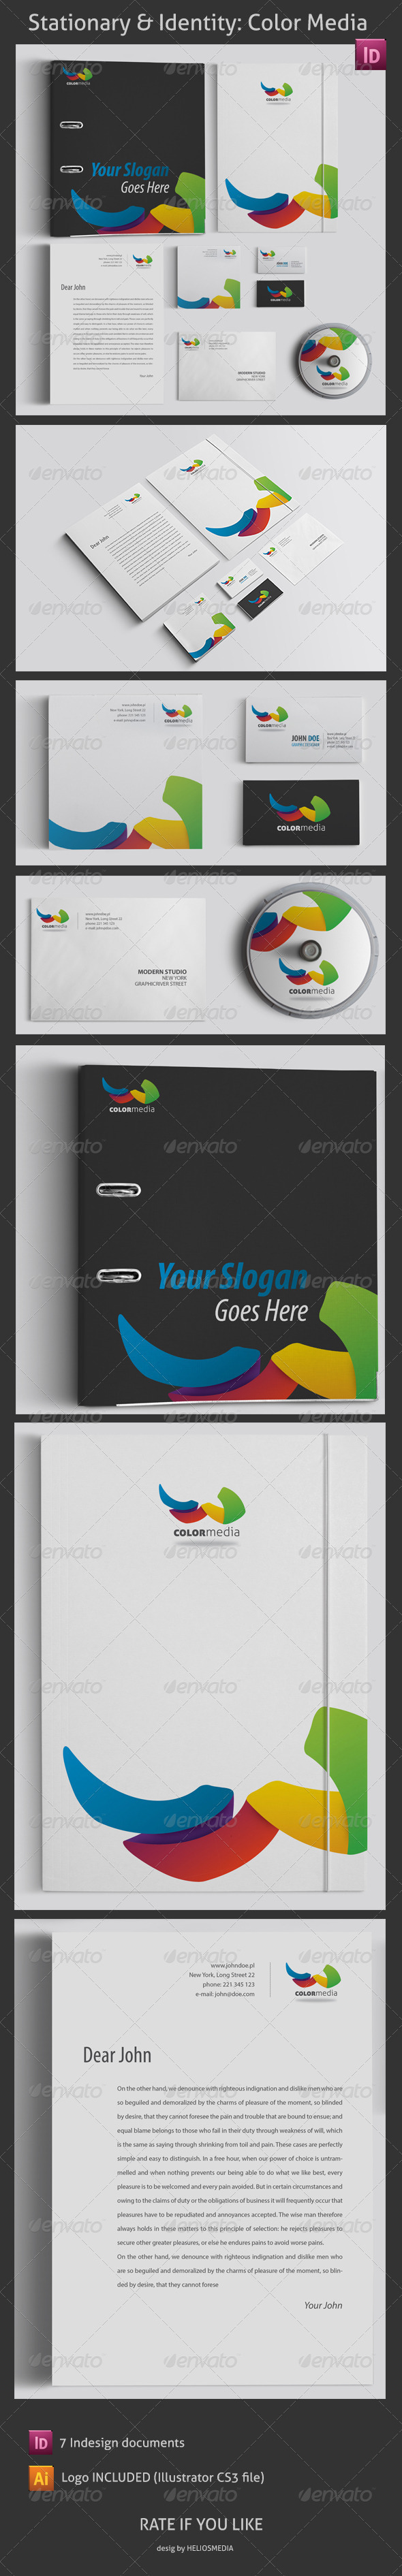 GraphicRiver Stationary & Identity Color Media 3417031